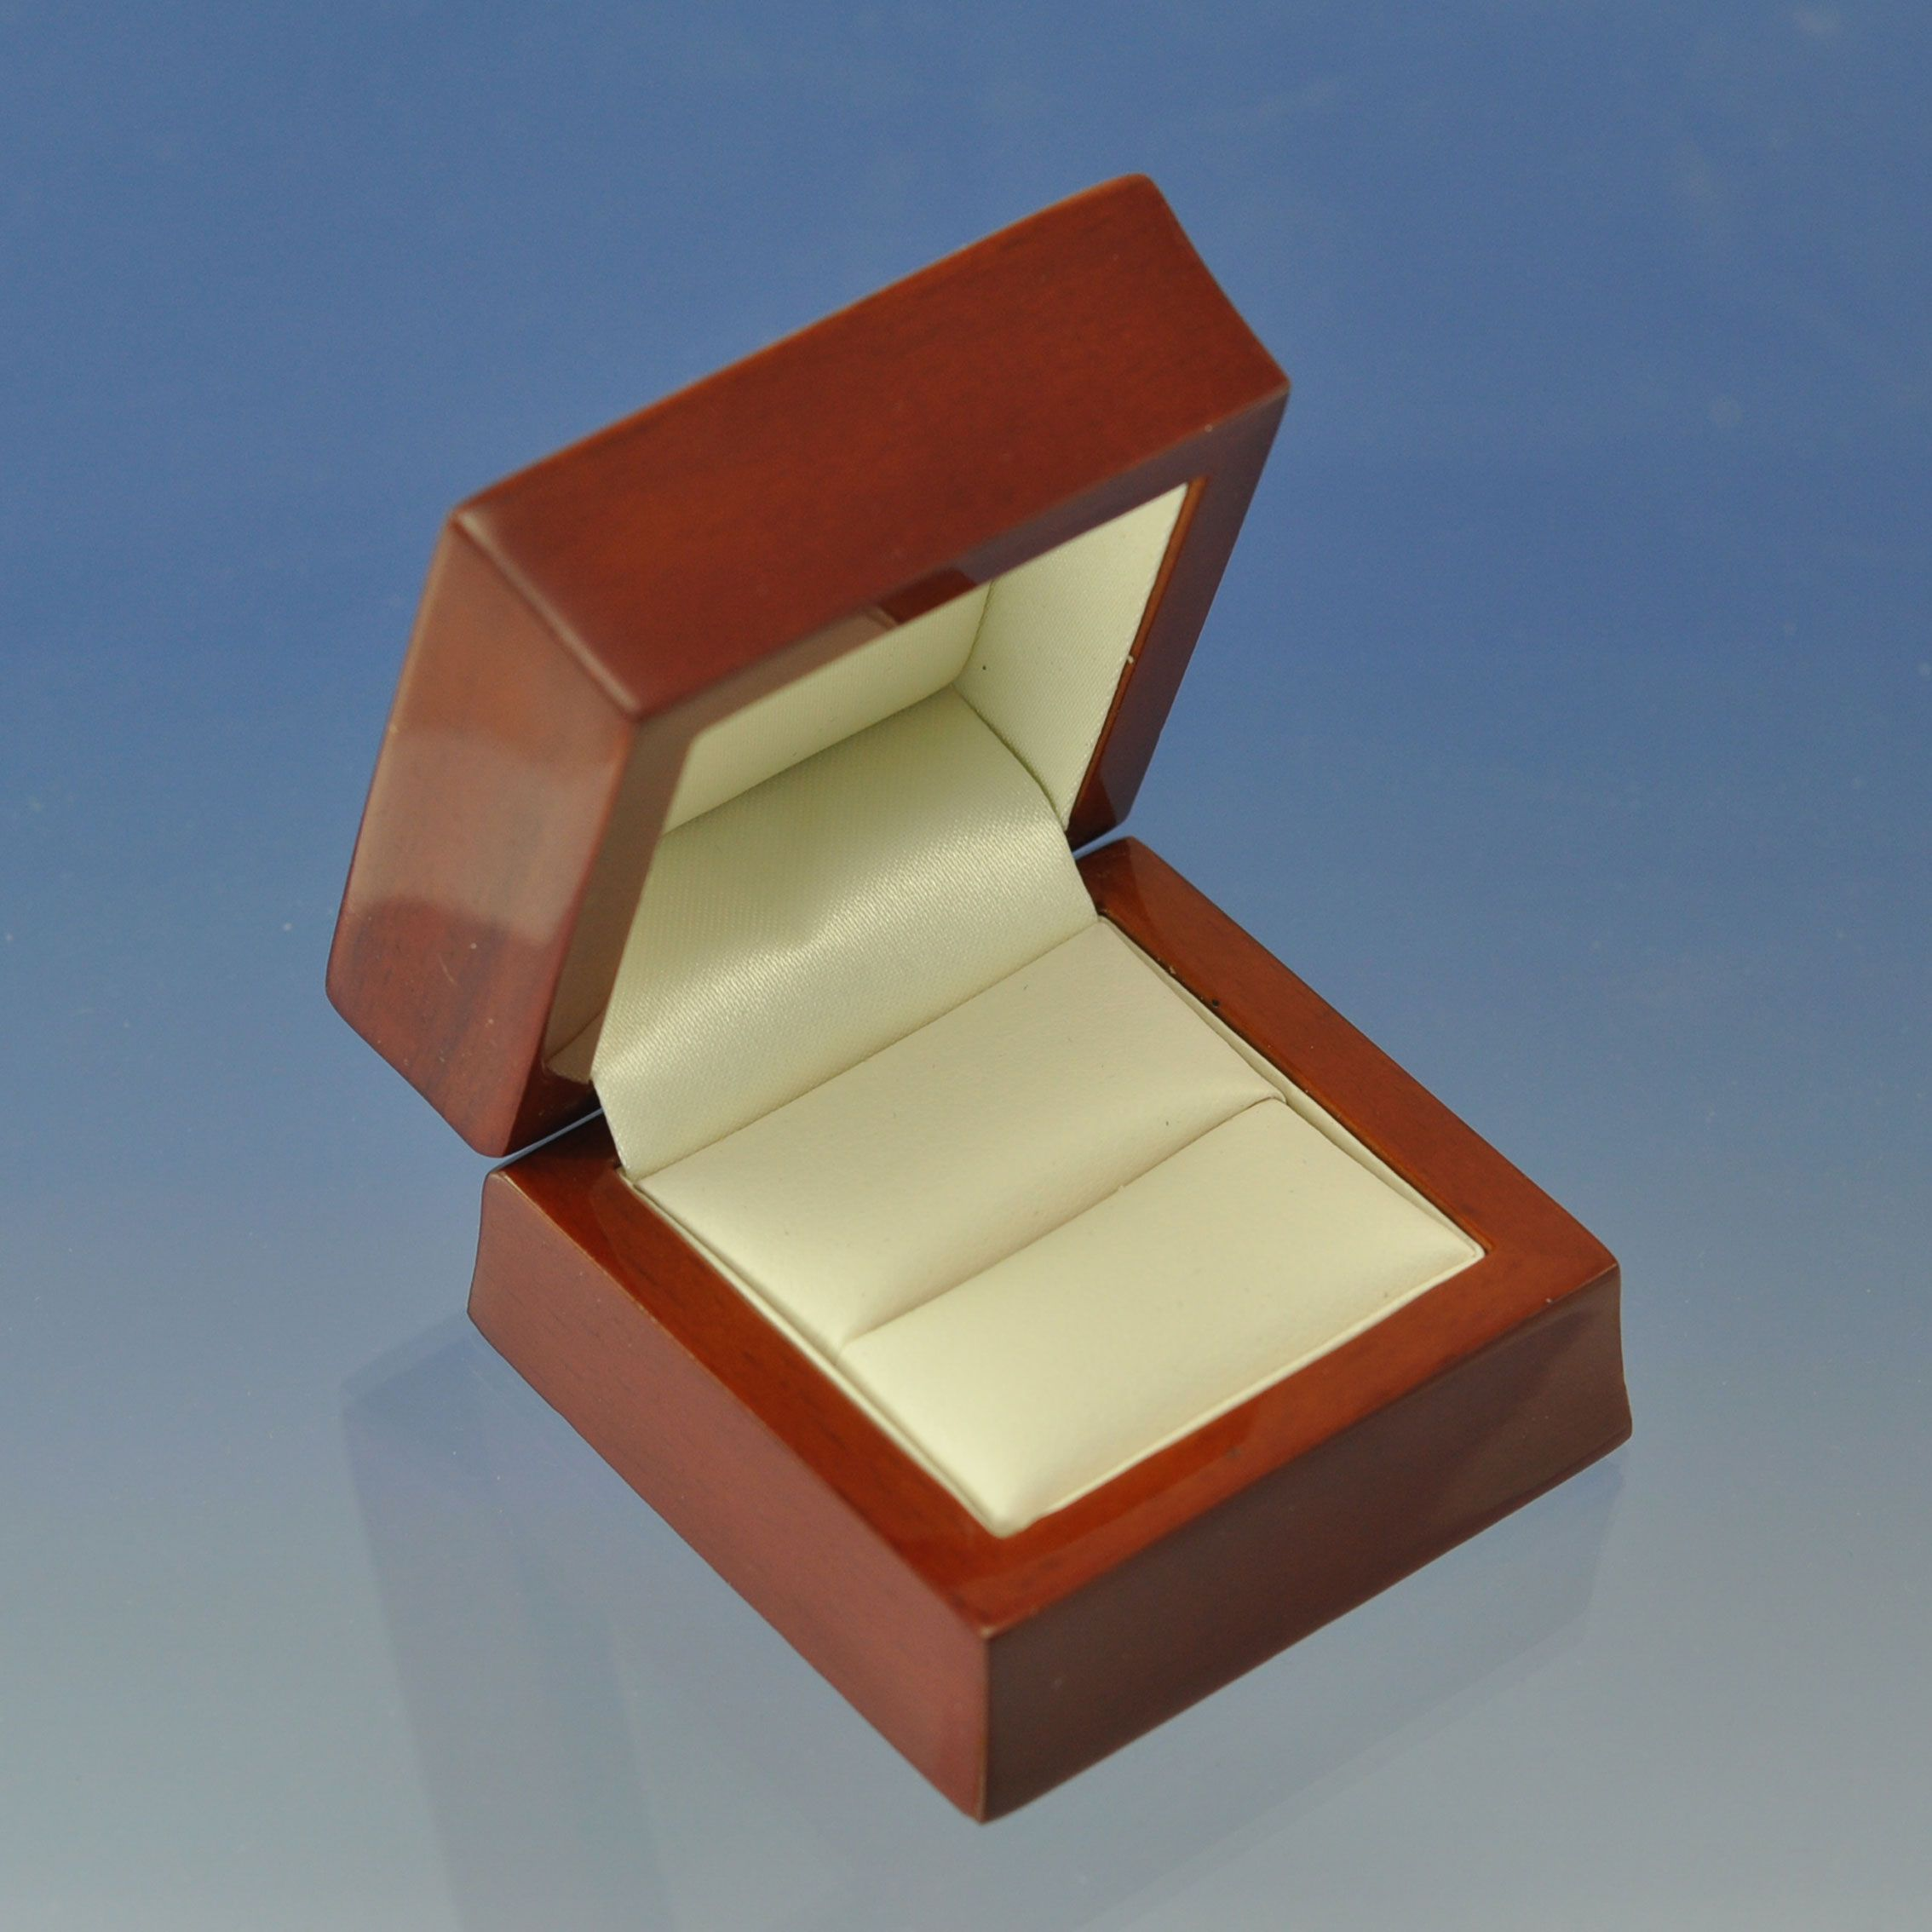 Luxury Wooden Ring Box Chris Parry UK Jewellery Designer Maker